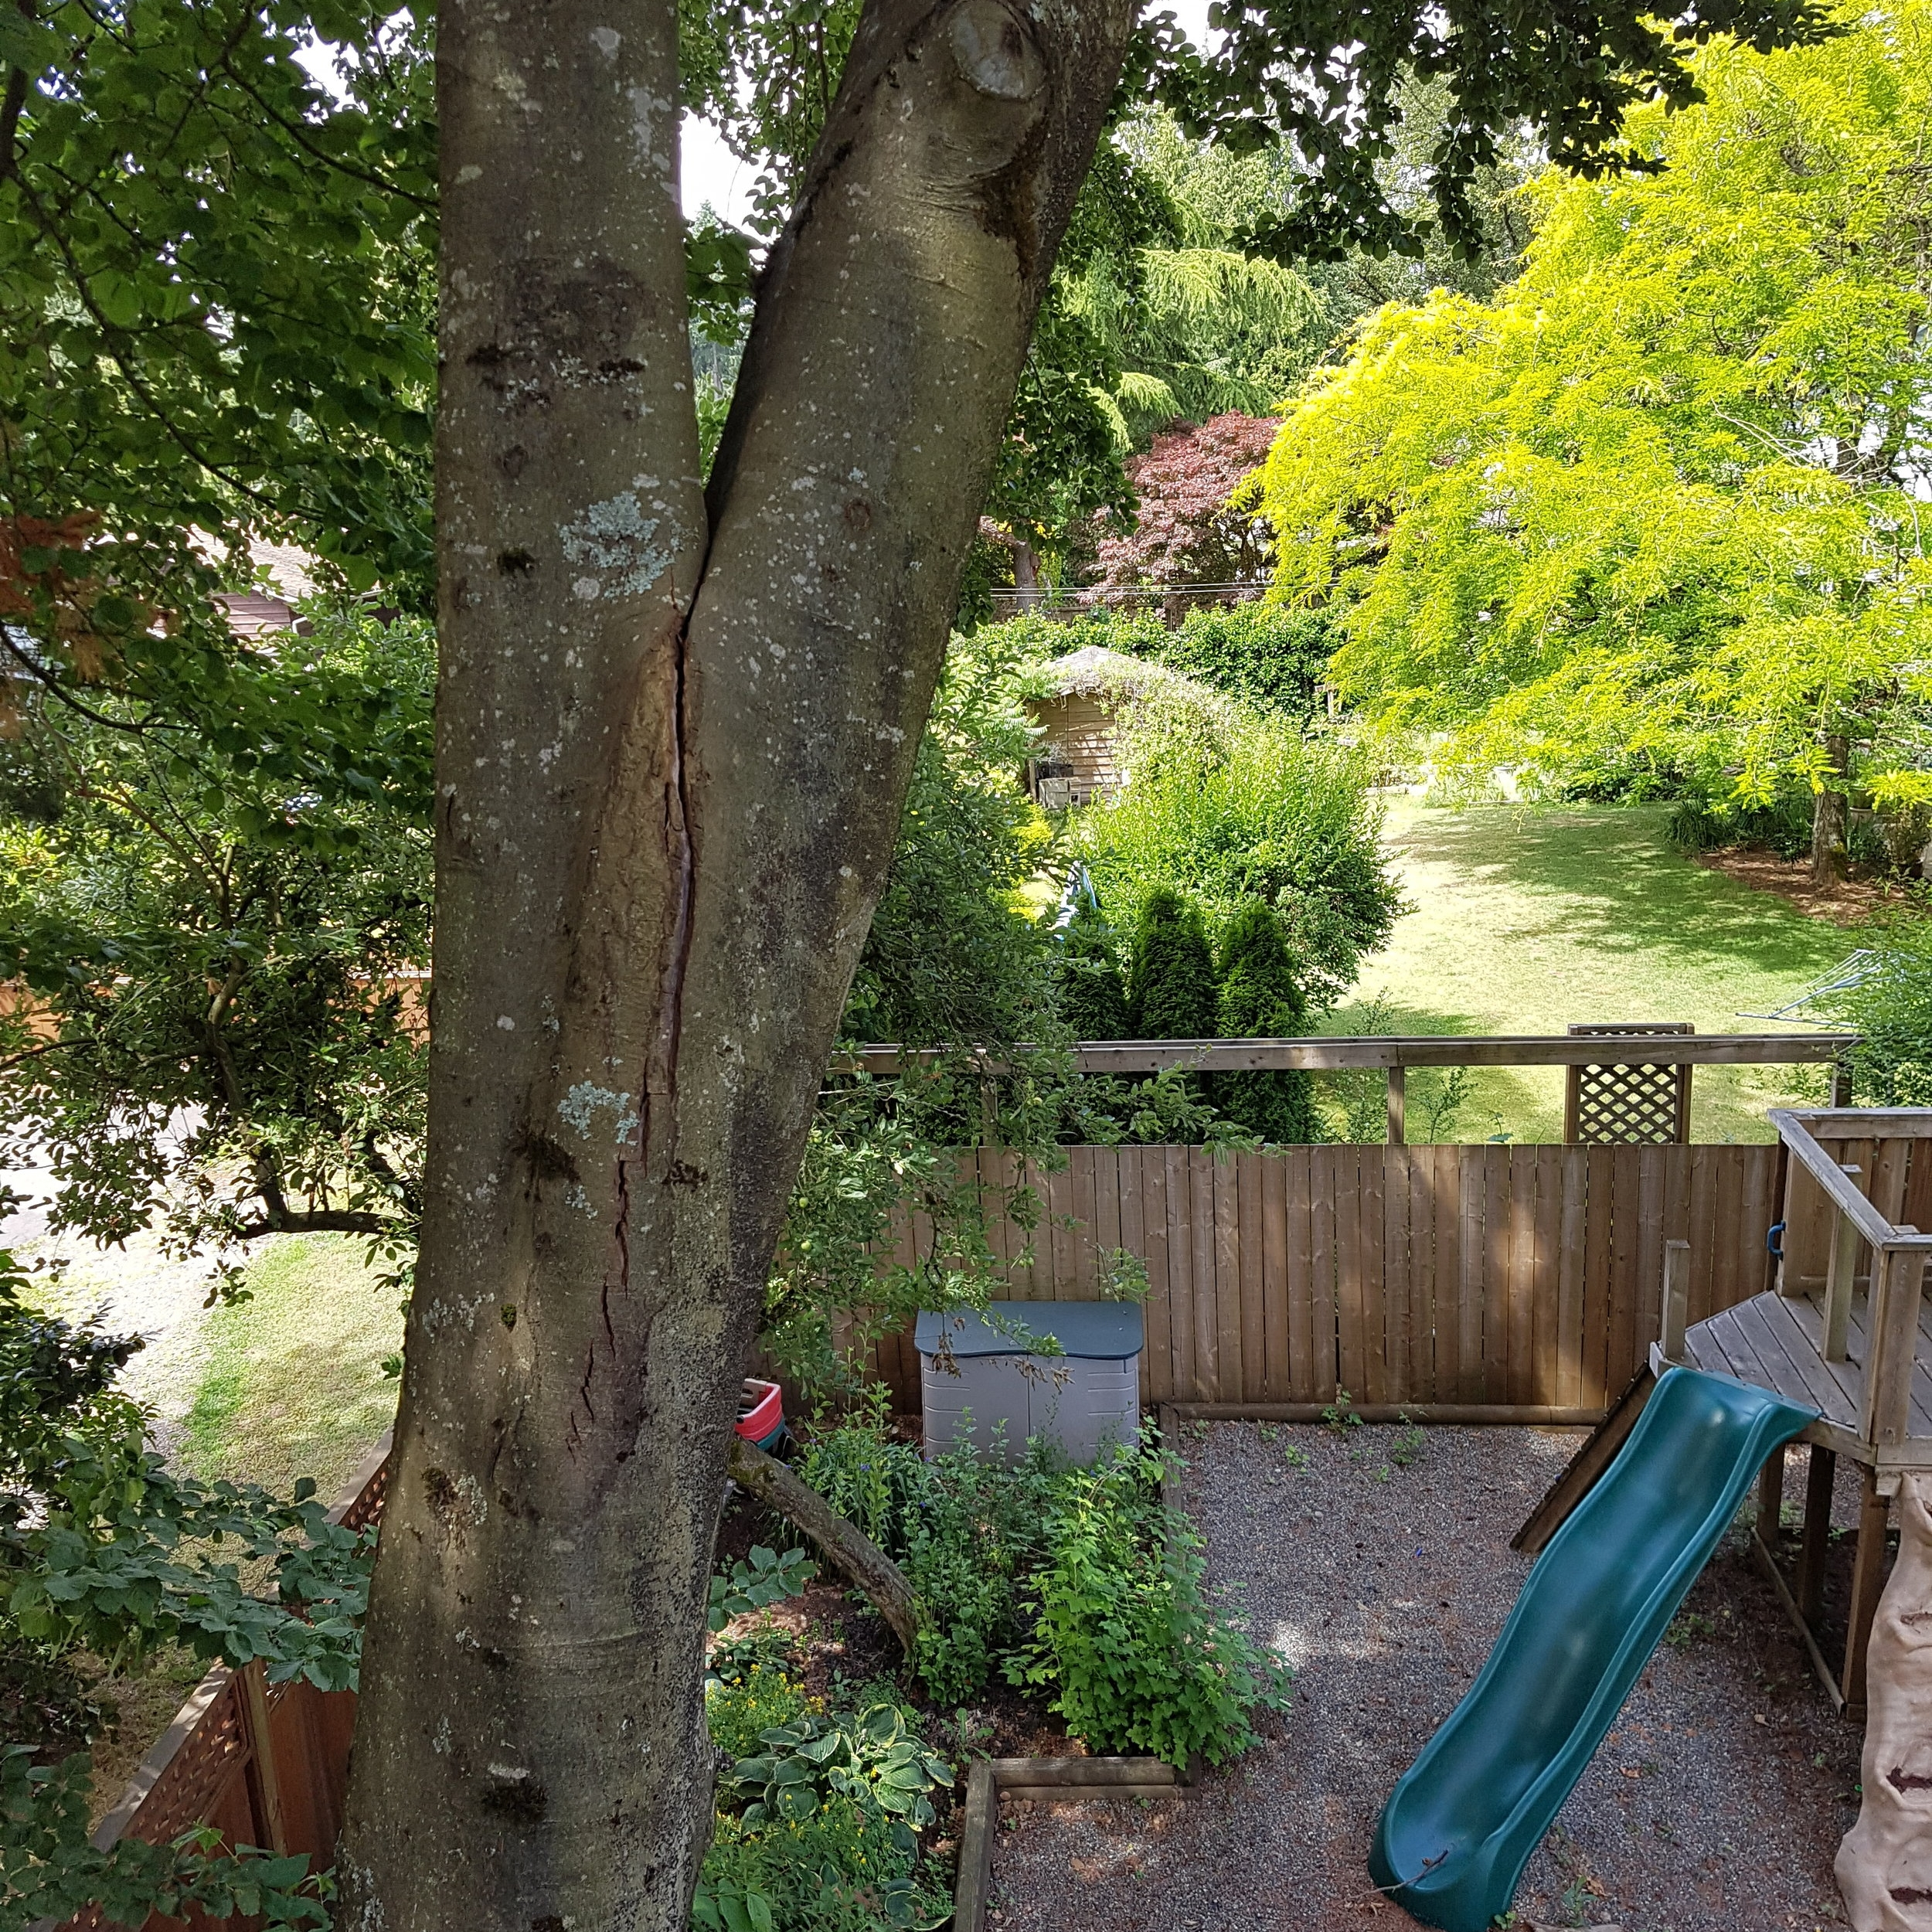 Cabling and Bracing - Sometimes a tree has a flaw that can't be addressed fully by pruning alone. We install supplemental support to reduce loading of flawed portions of a tree to help retain high value trees.